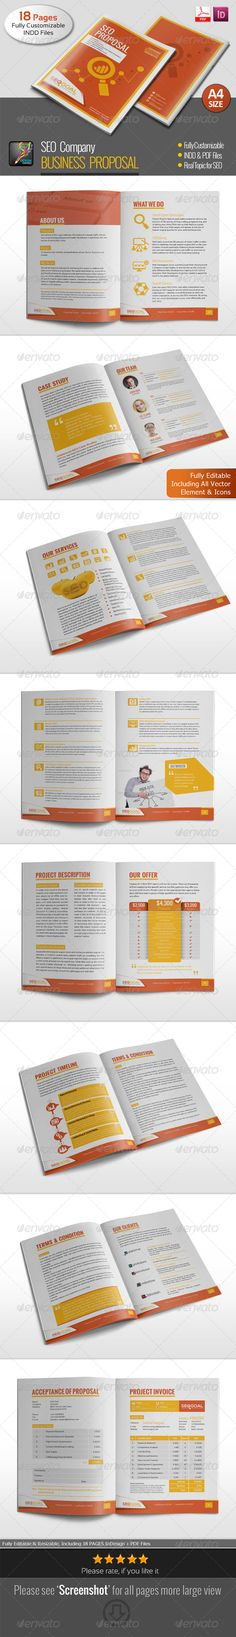 Business Proposal Template w  Resume \ Invoice 60+ Pages - best proposal templates